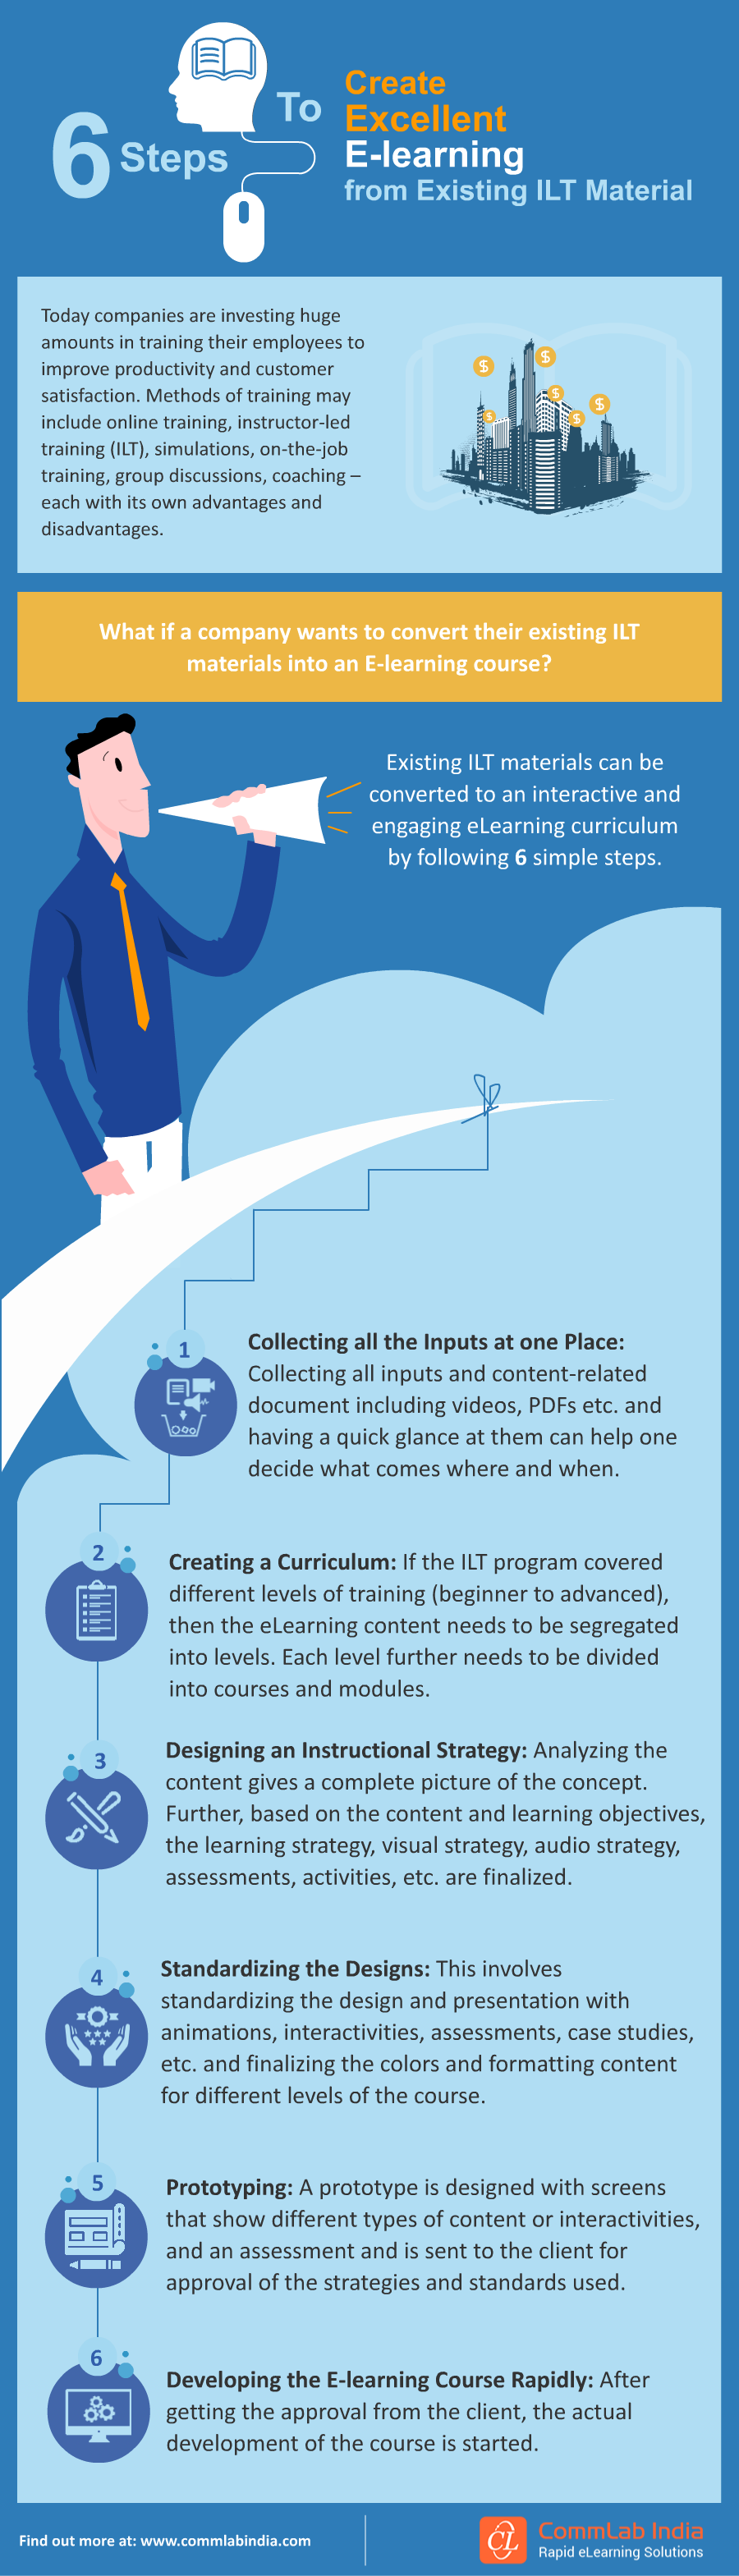 6 Simple Steps to Creating Excellent E-learning Courses from Existing ILT Materials [Infographic]